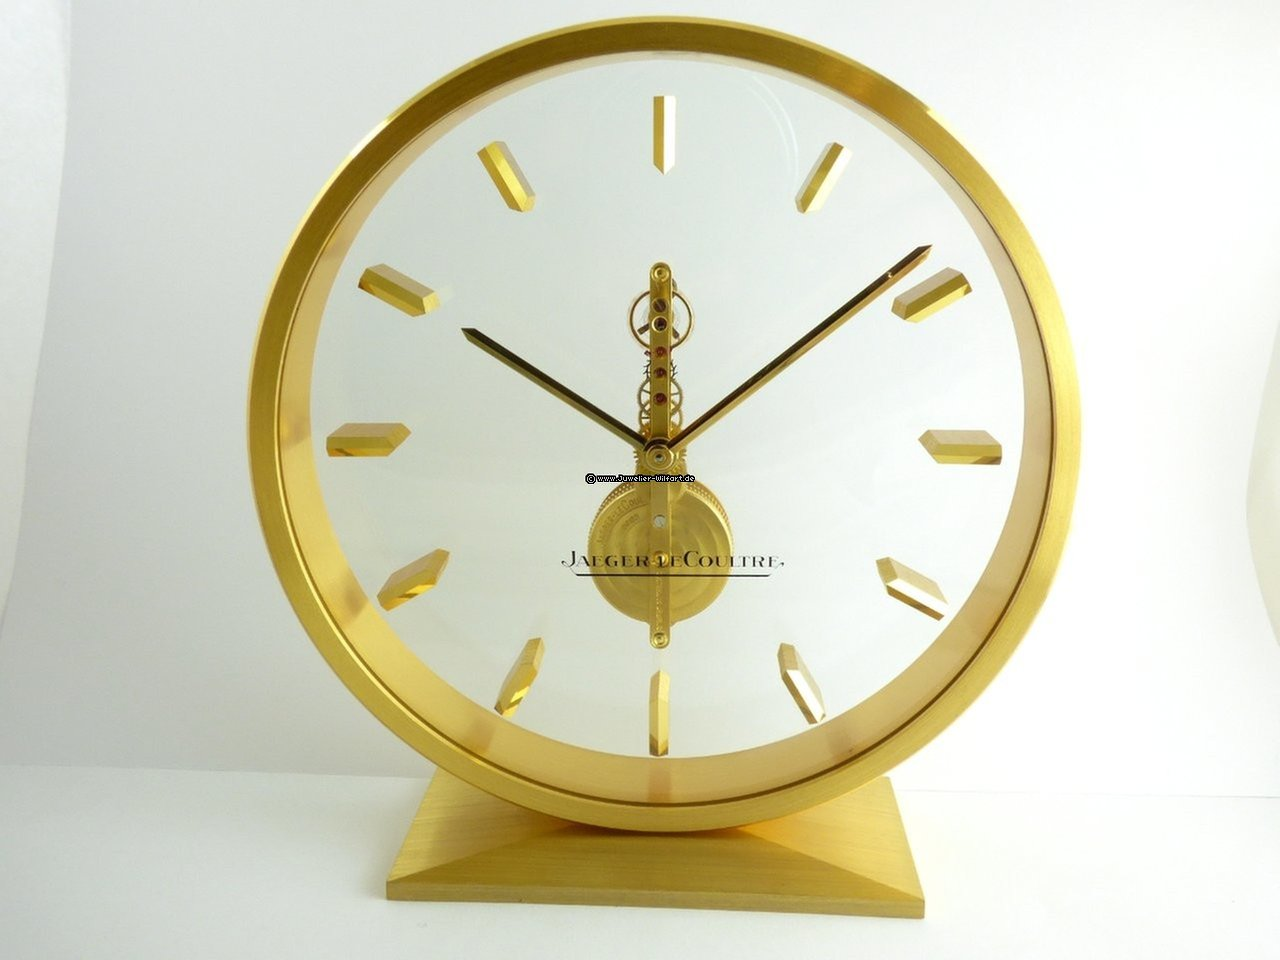 Jaeger LeCoultre Table Clock Stick Movement 8 Days For $2,297 For Sale From  A Trusted Seller On Chrono24